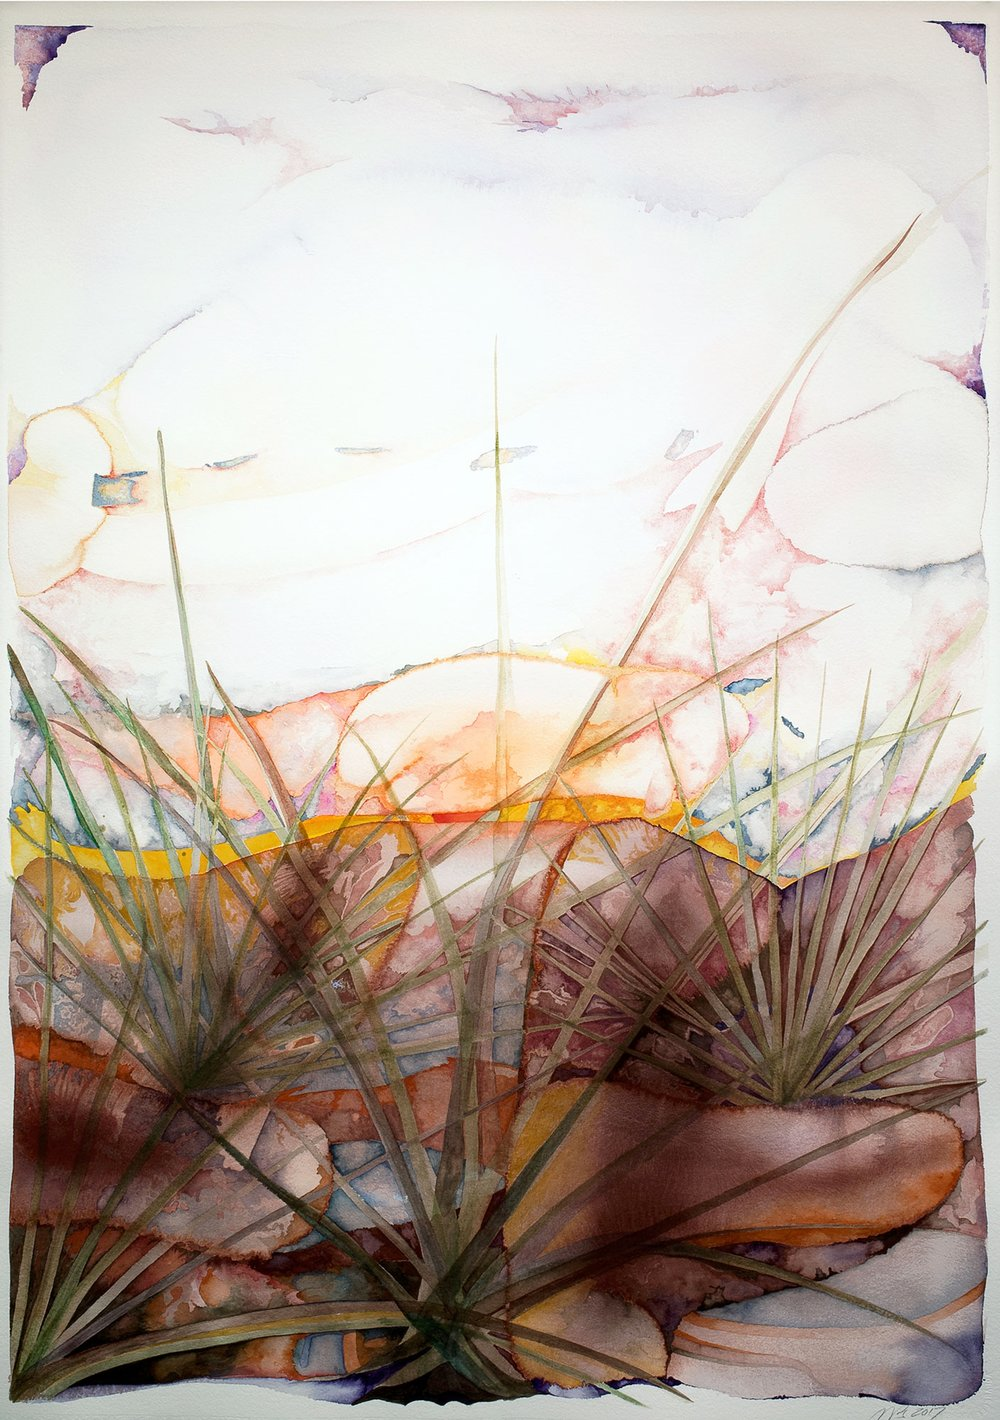 Emerging Sunset, 2017, watercolor on Arches watercolor paper, 41 x 29 in.